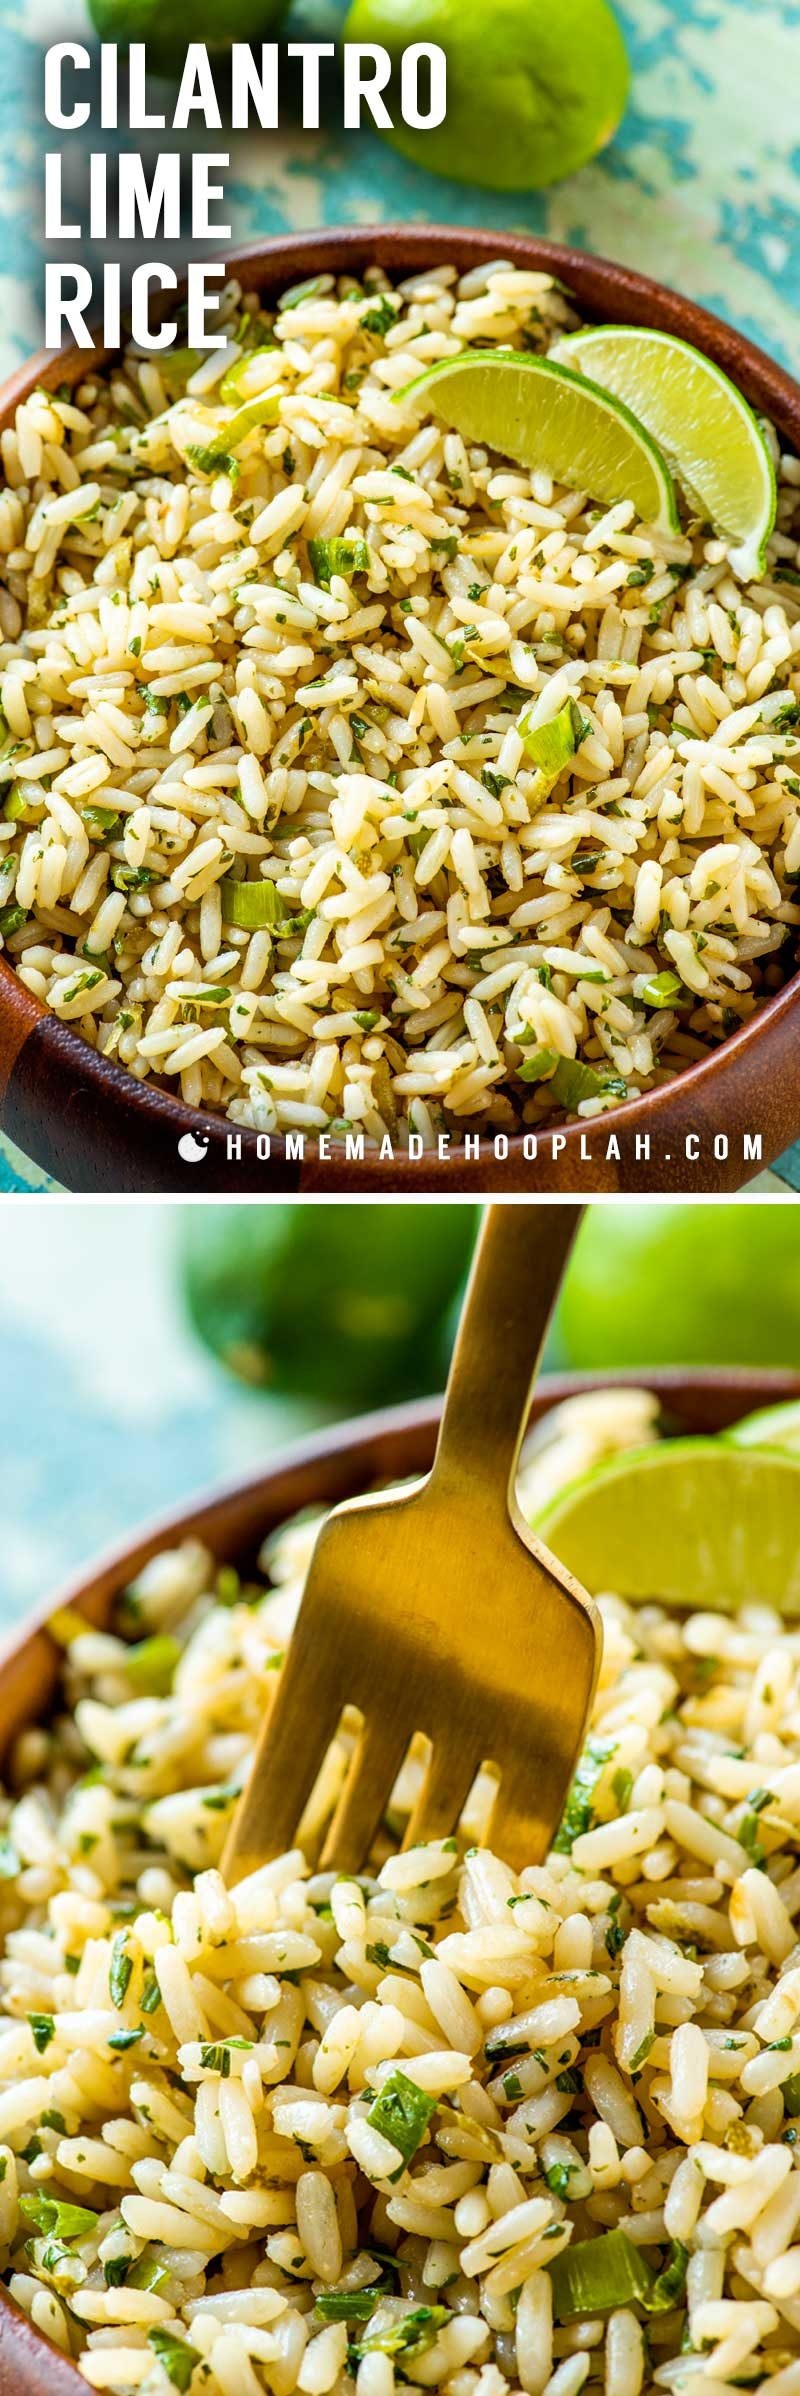 An easy cilantro lime rice recipe.